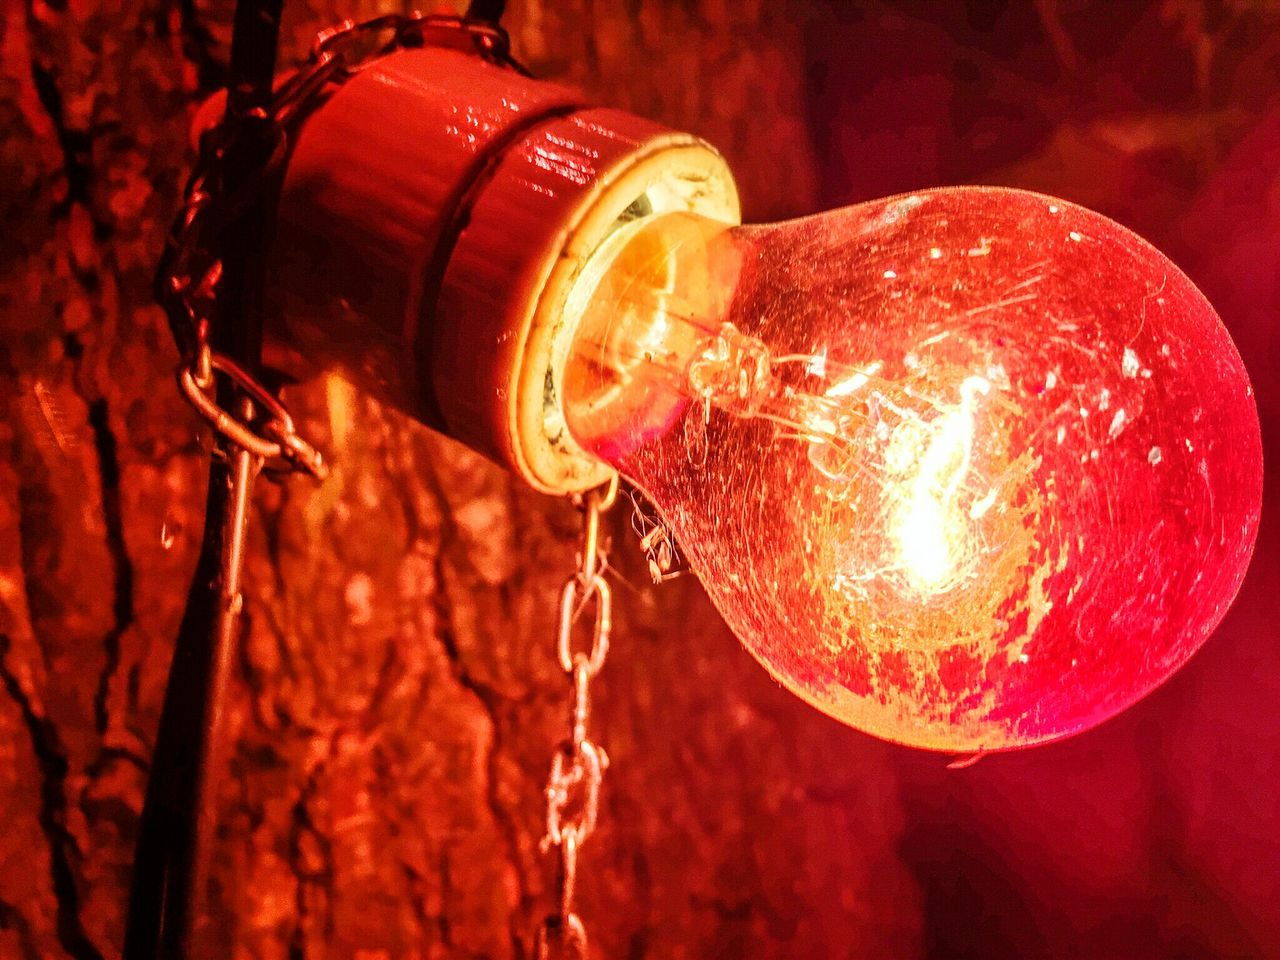 Red Red Lamp Red Lights Red Light Rote Lampe Architecture_collection Interior Design ArtWork Artphotography Red Color Light Art Photography Bulb Bulbphotography Bulb Light Red Bulb